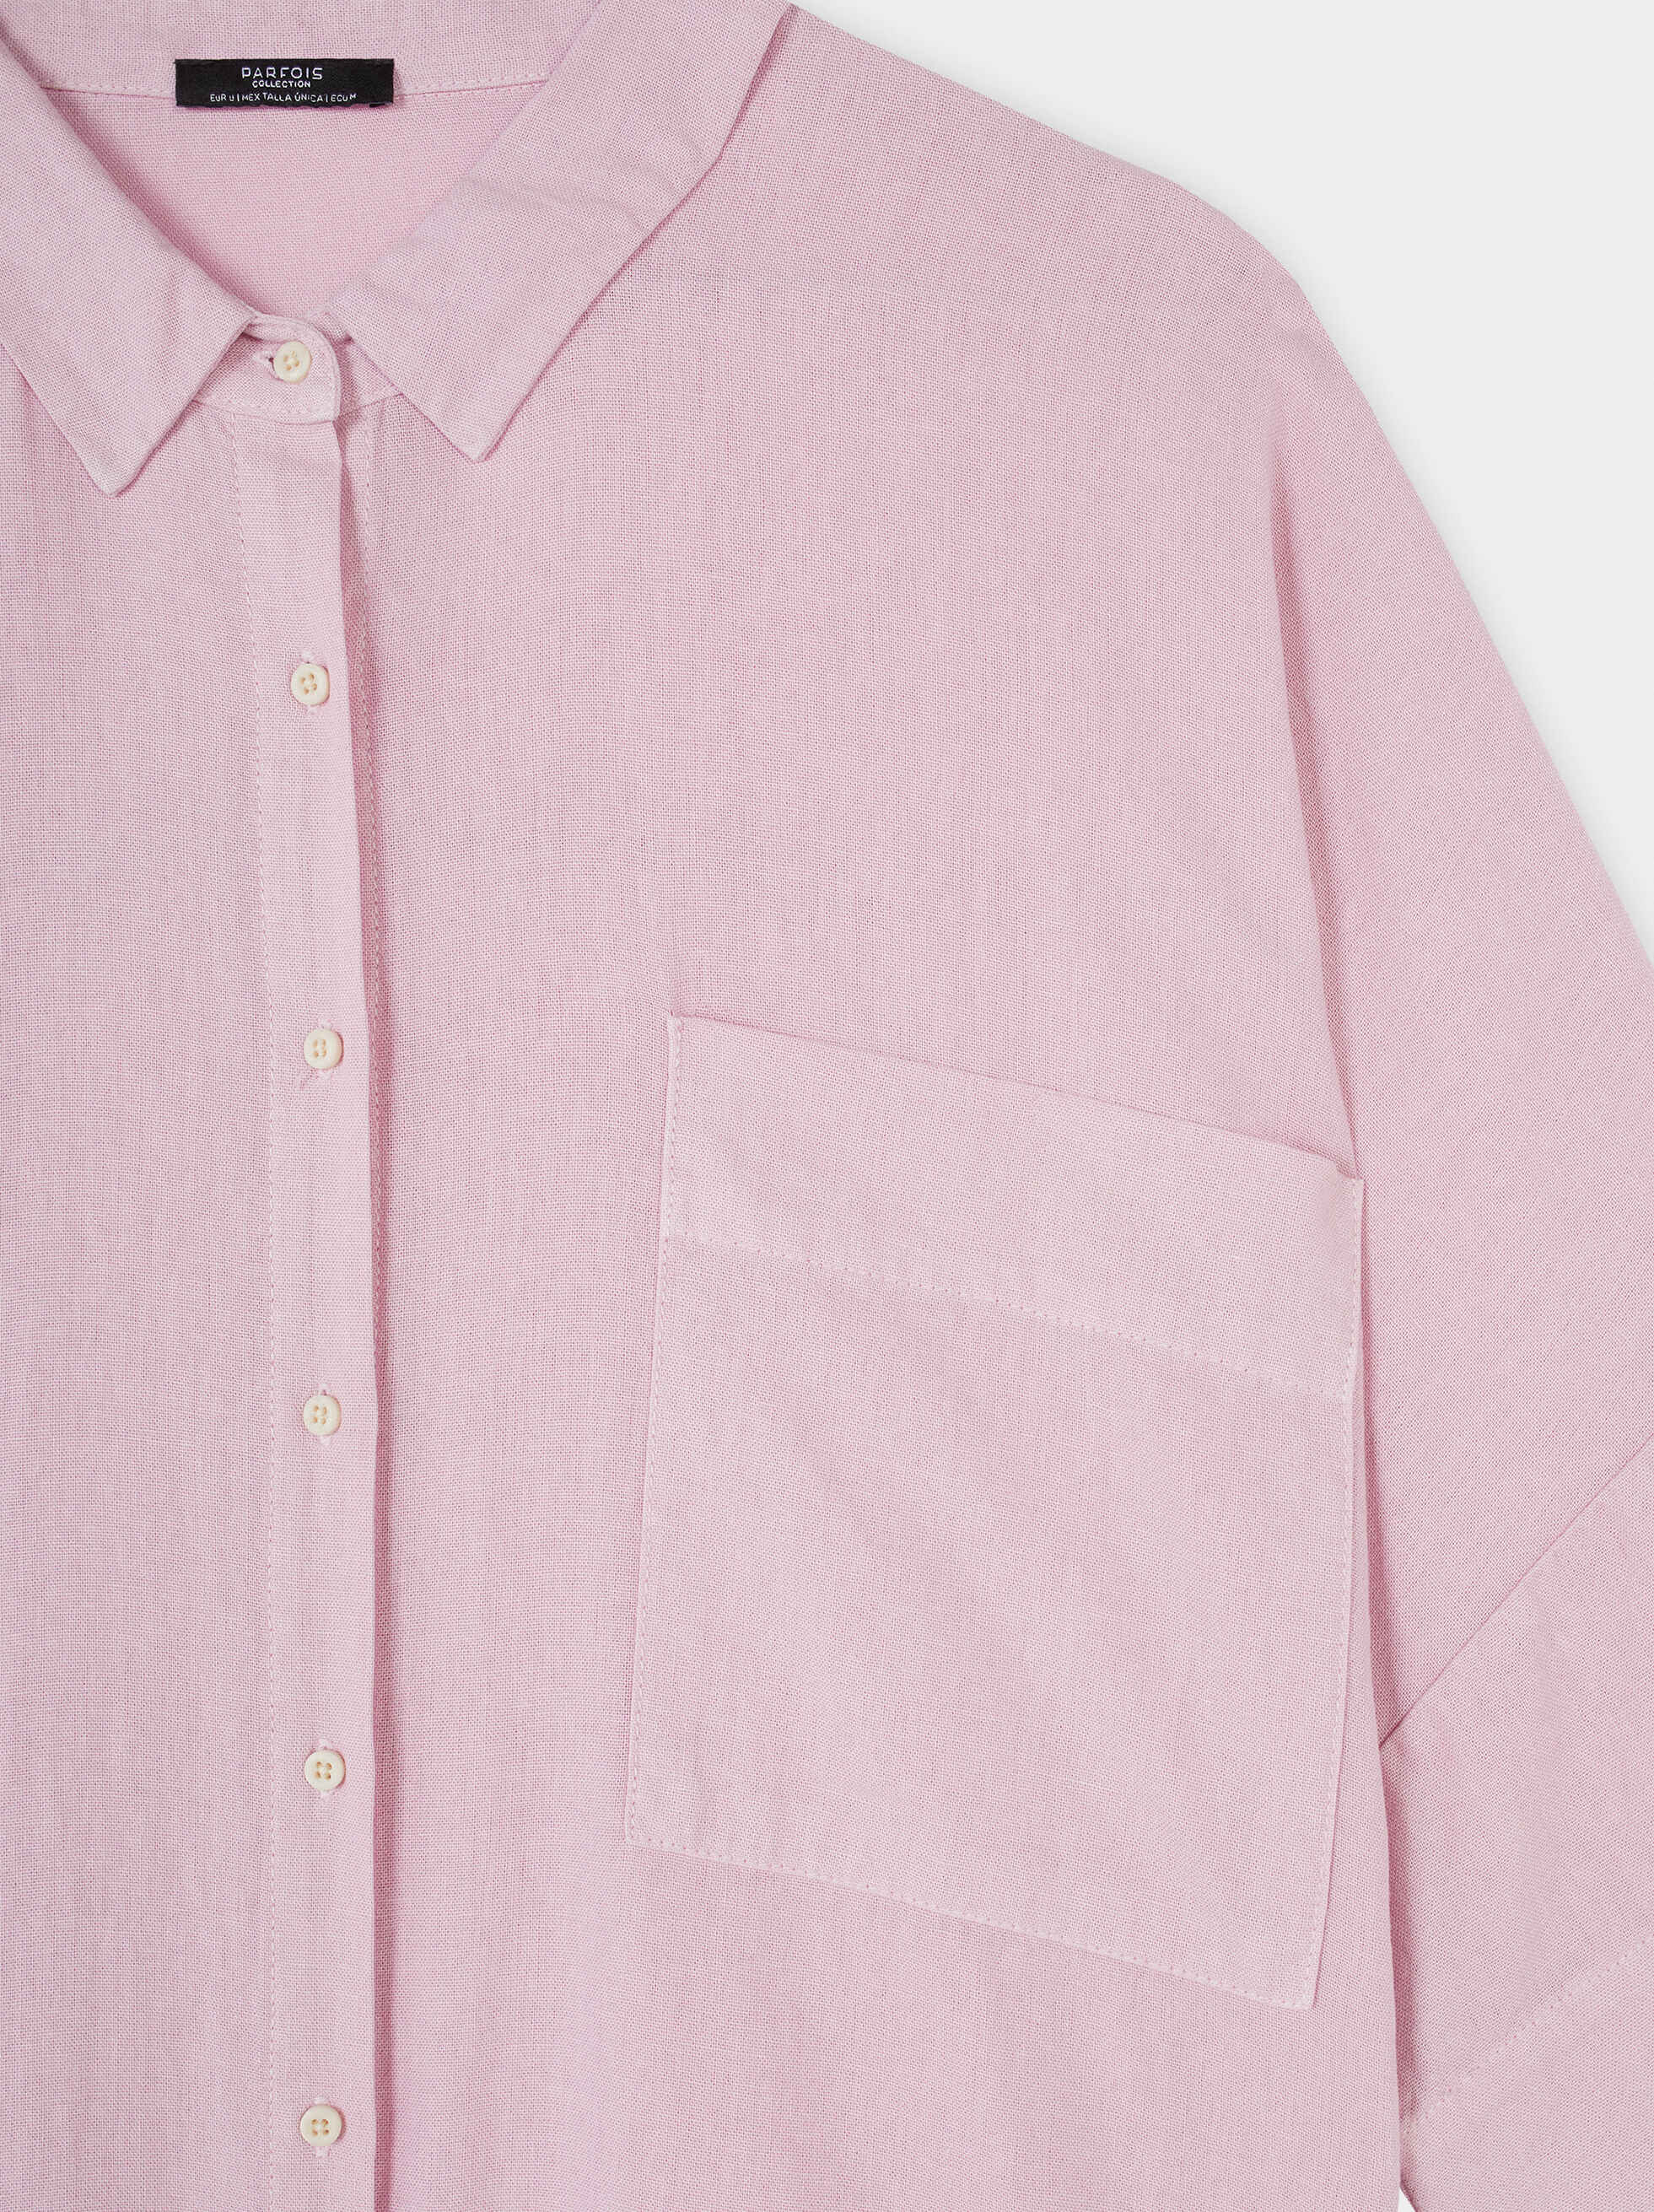 Plain Oversized Shirt, Pink, hi-res